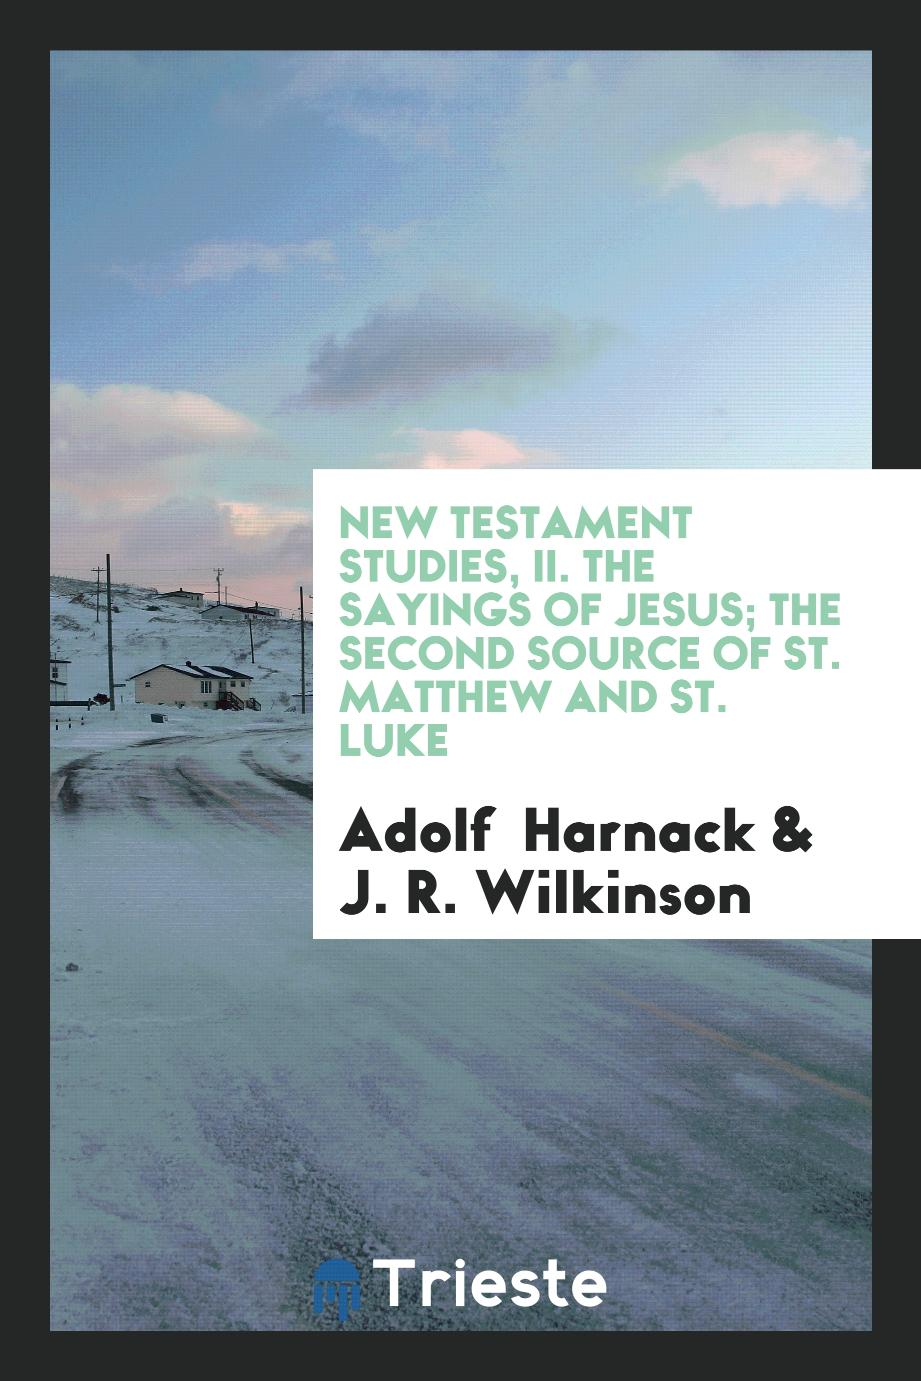 New Testament Studies, II. The Sayings of Jesus; The Second Source of St. Matthew and St. Luke